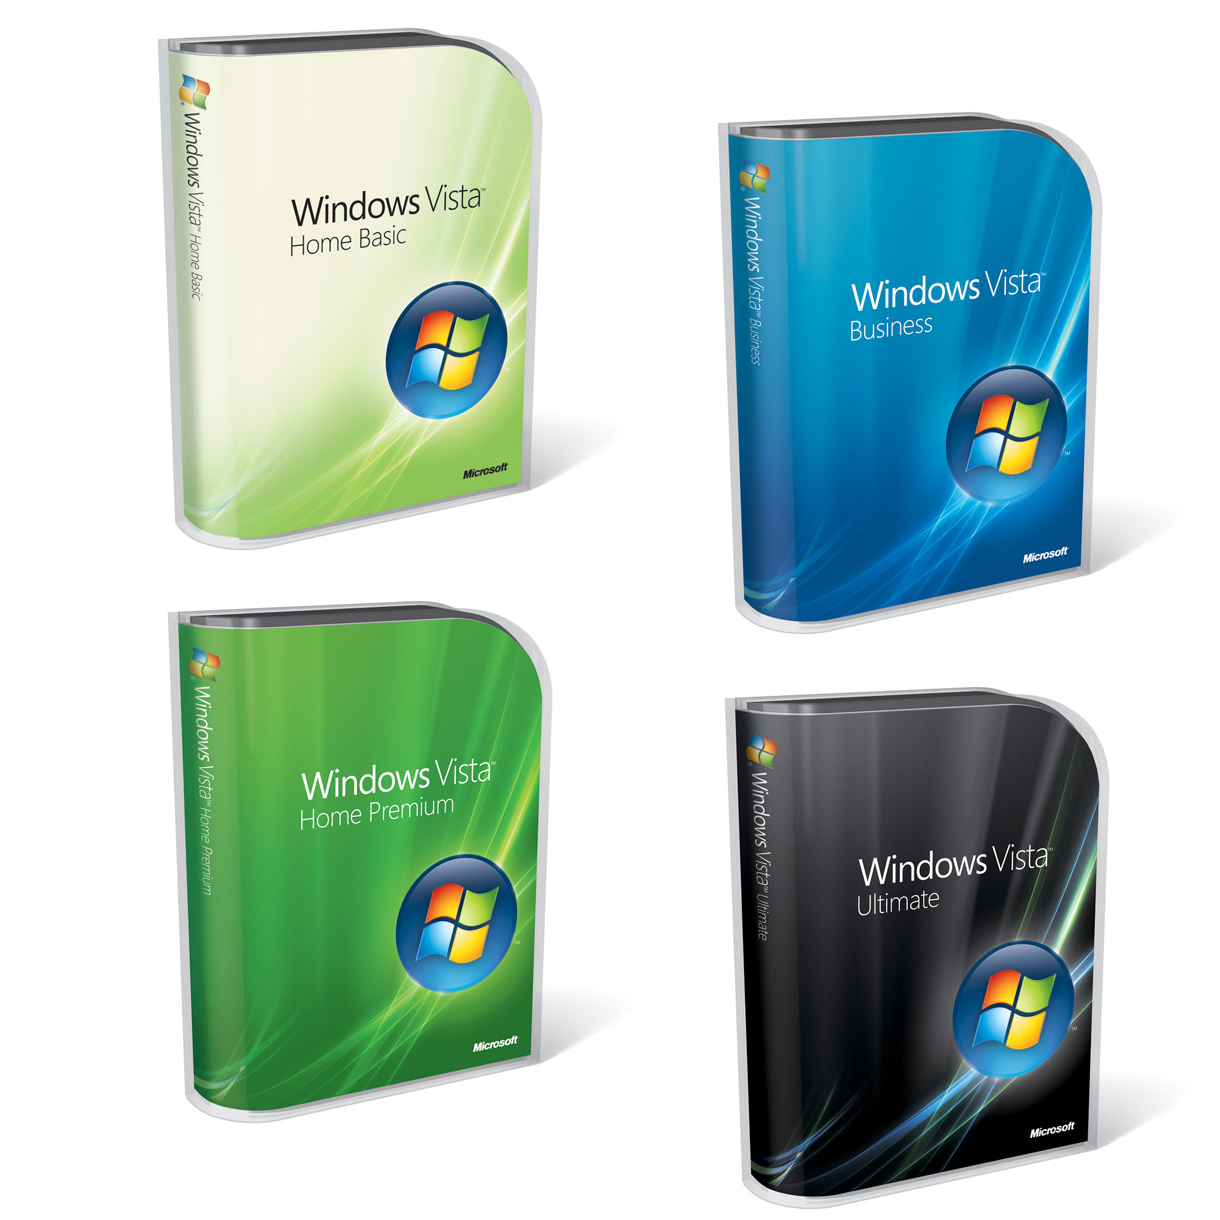 13 years since Windows Vista launched